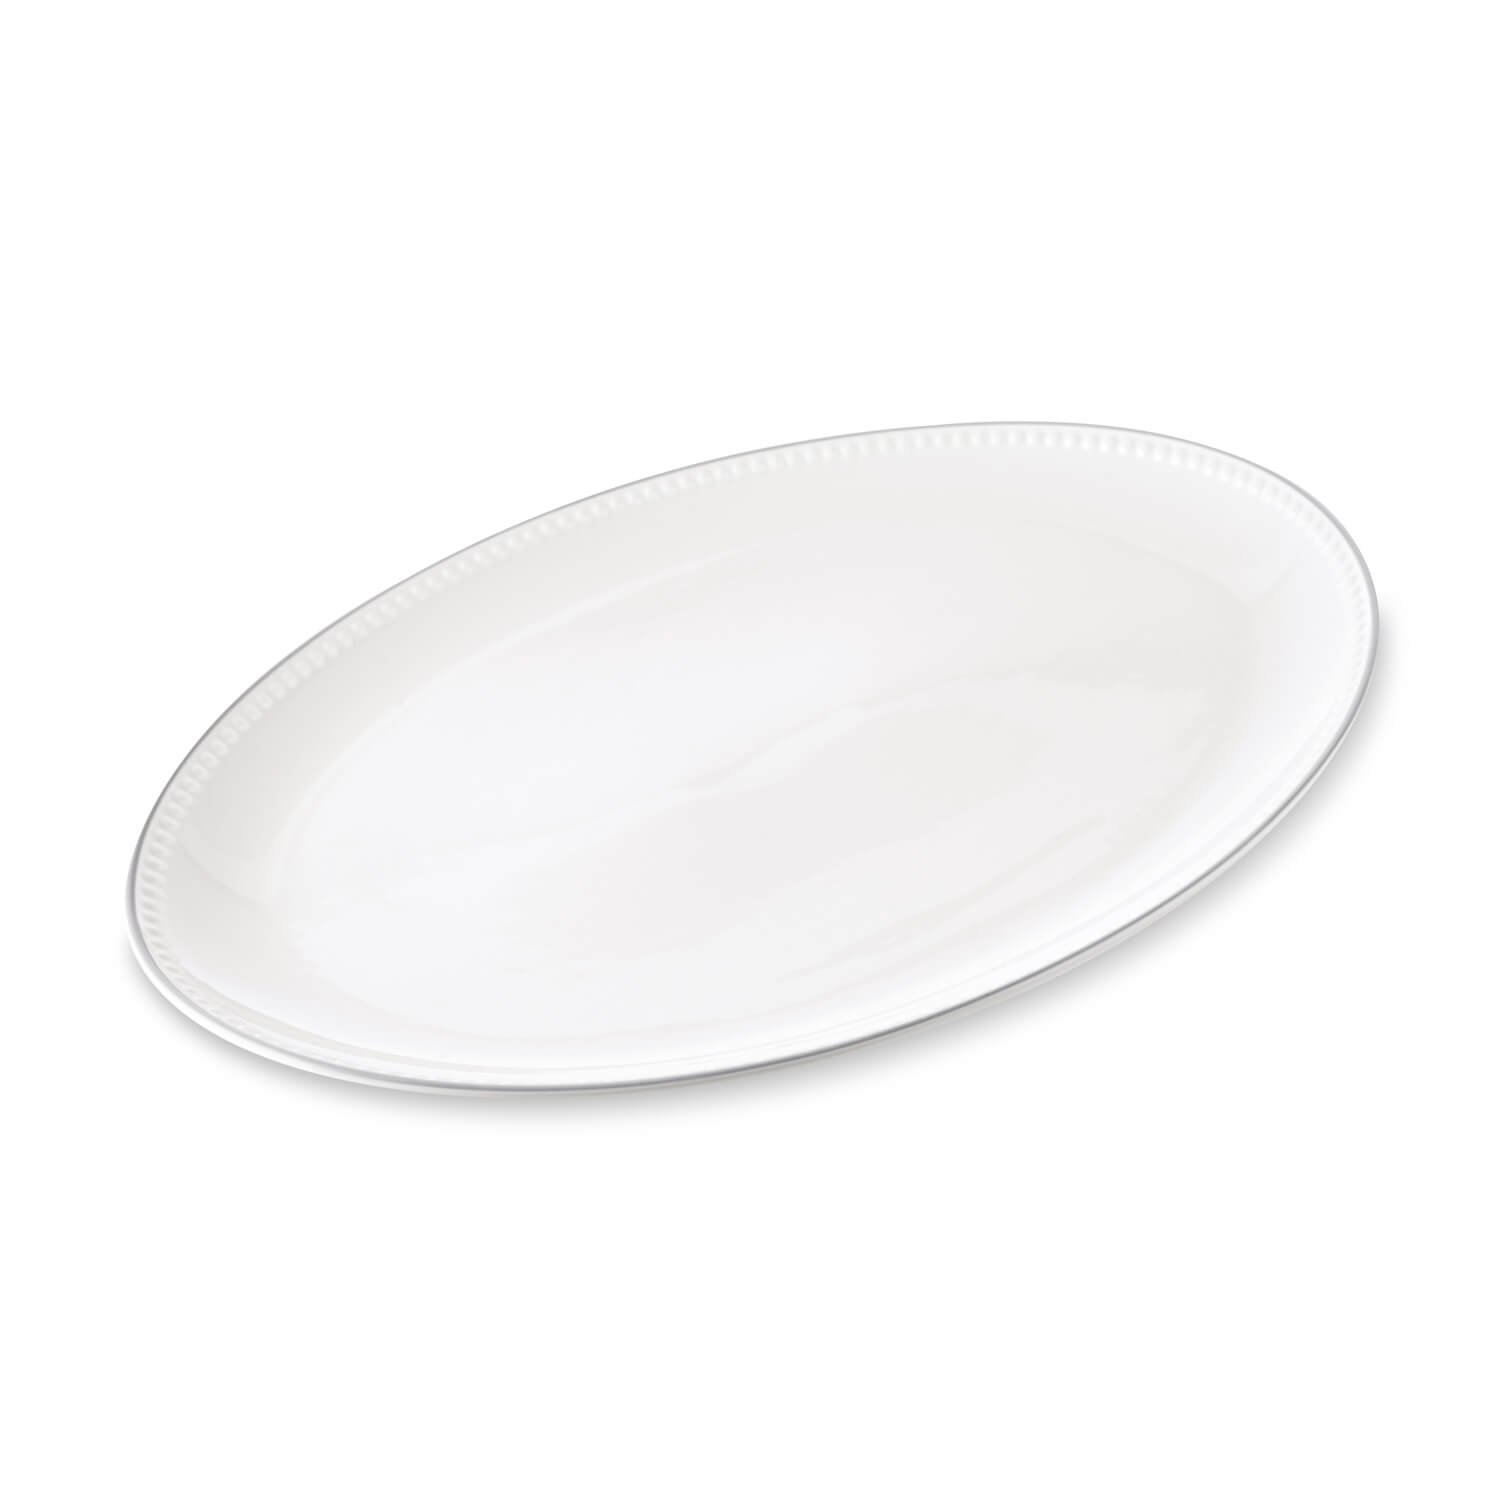 SIGNATURE COLLECTION LARGE OVAL PLATTER 43.5cm